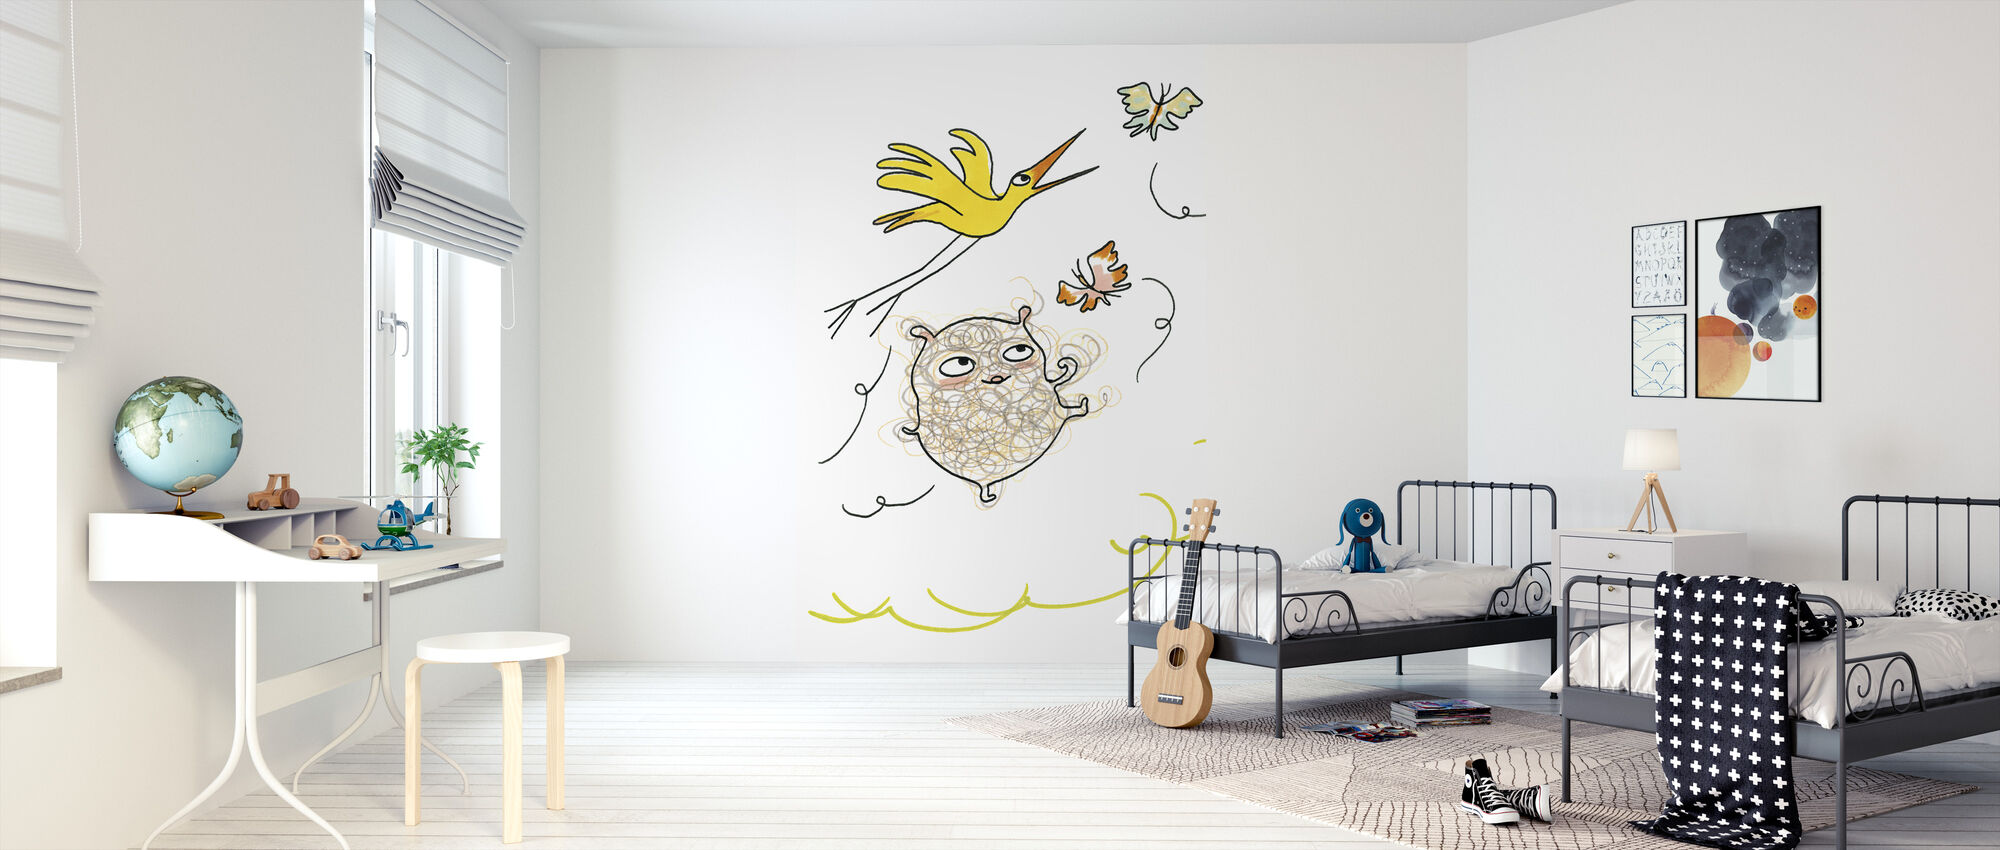 Whose Butterfly 1 - Wallpaper - Kids Room